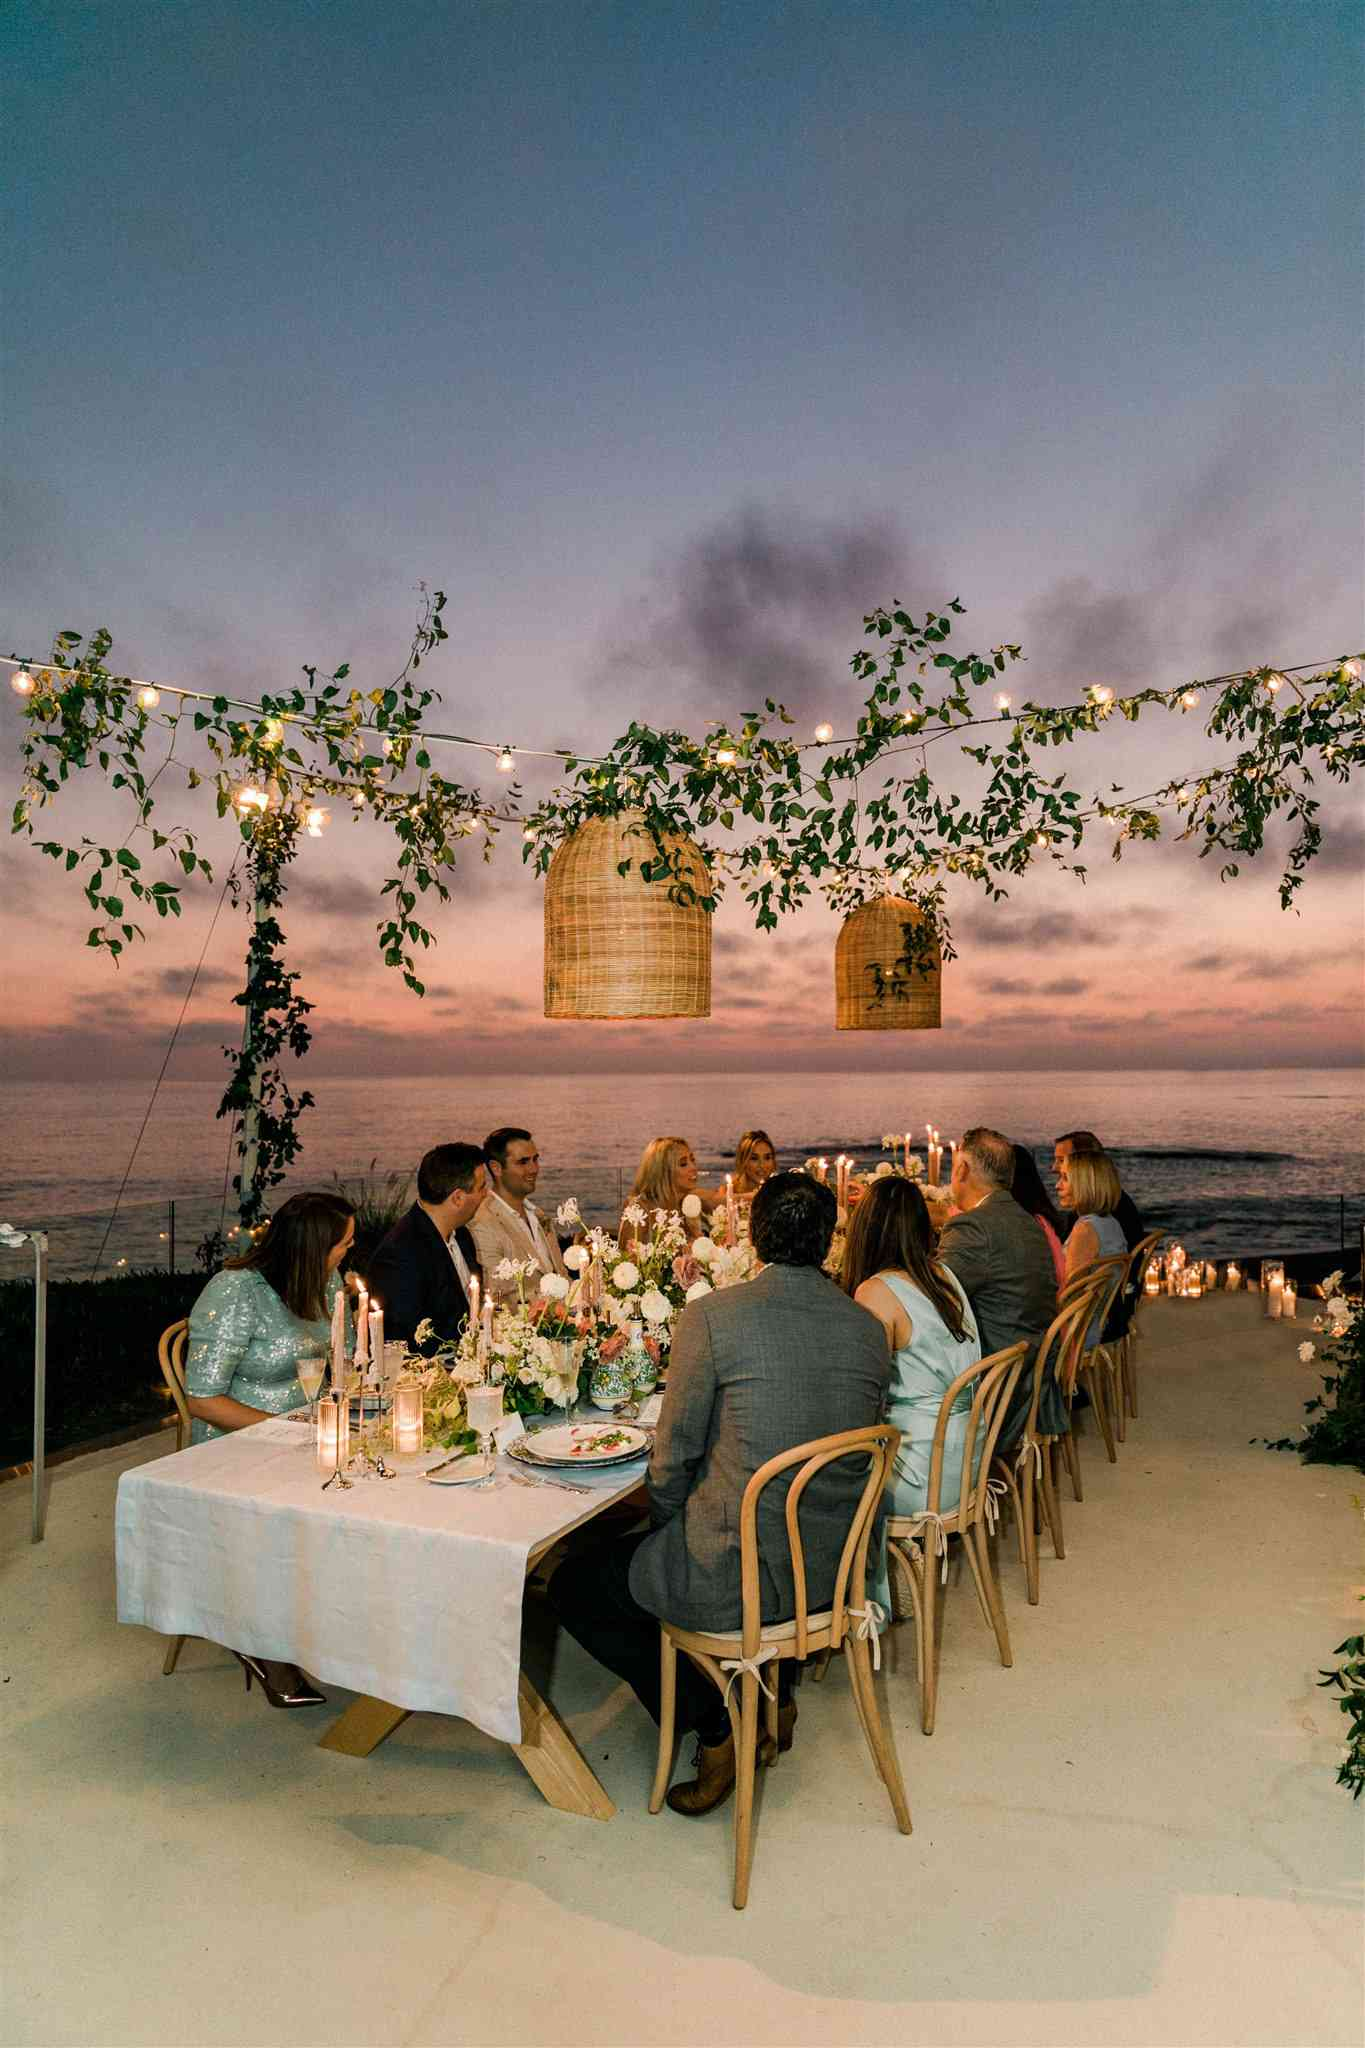 Guests at a wedding sitting at a reception table by the beach at sunset